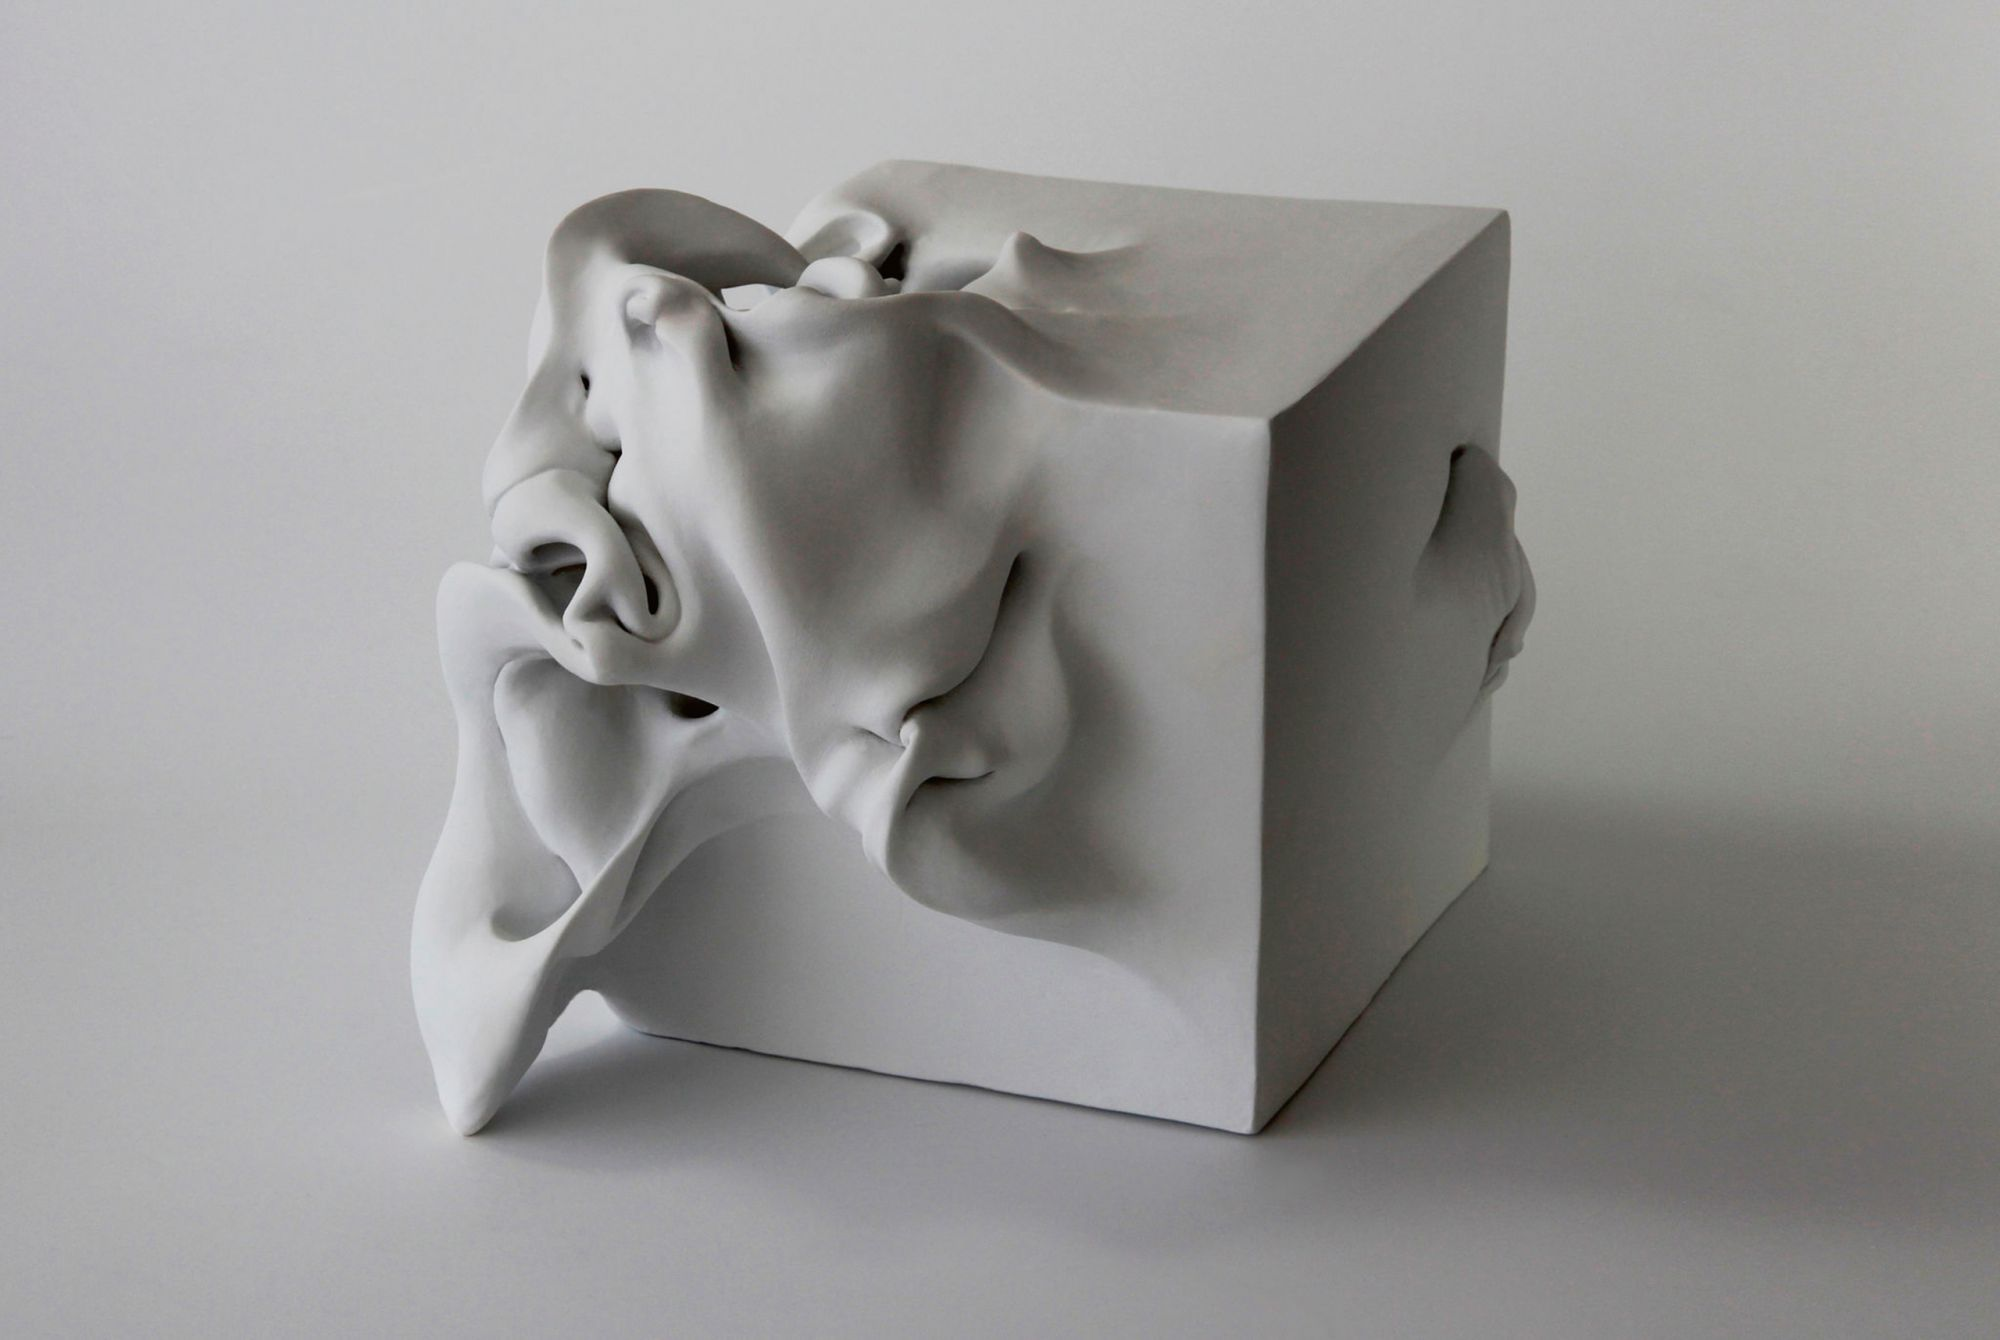 Cube 2 ceramic sculpture by Israeli  artist Sharon Brill from theartling.com